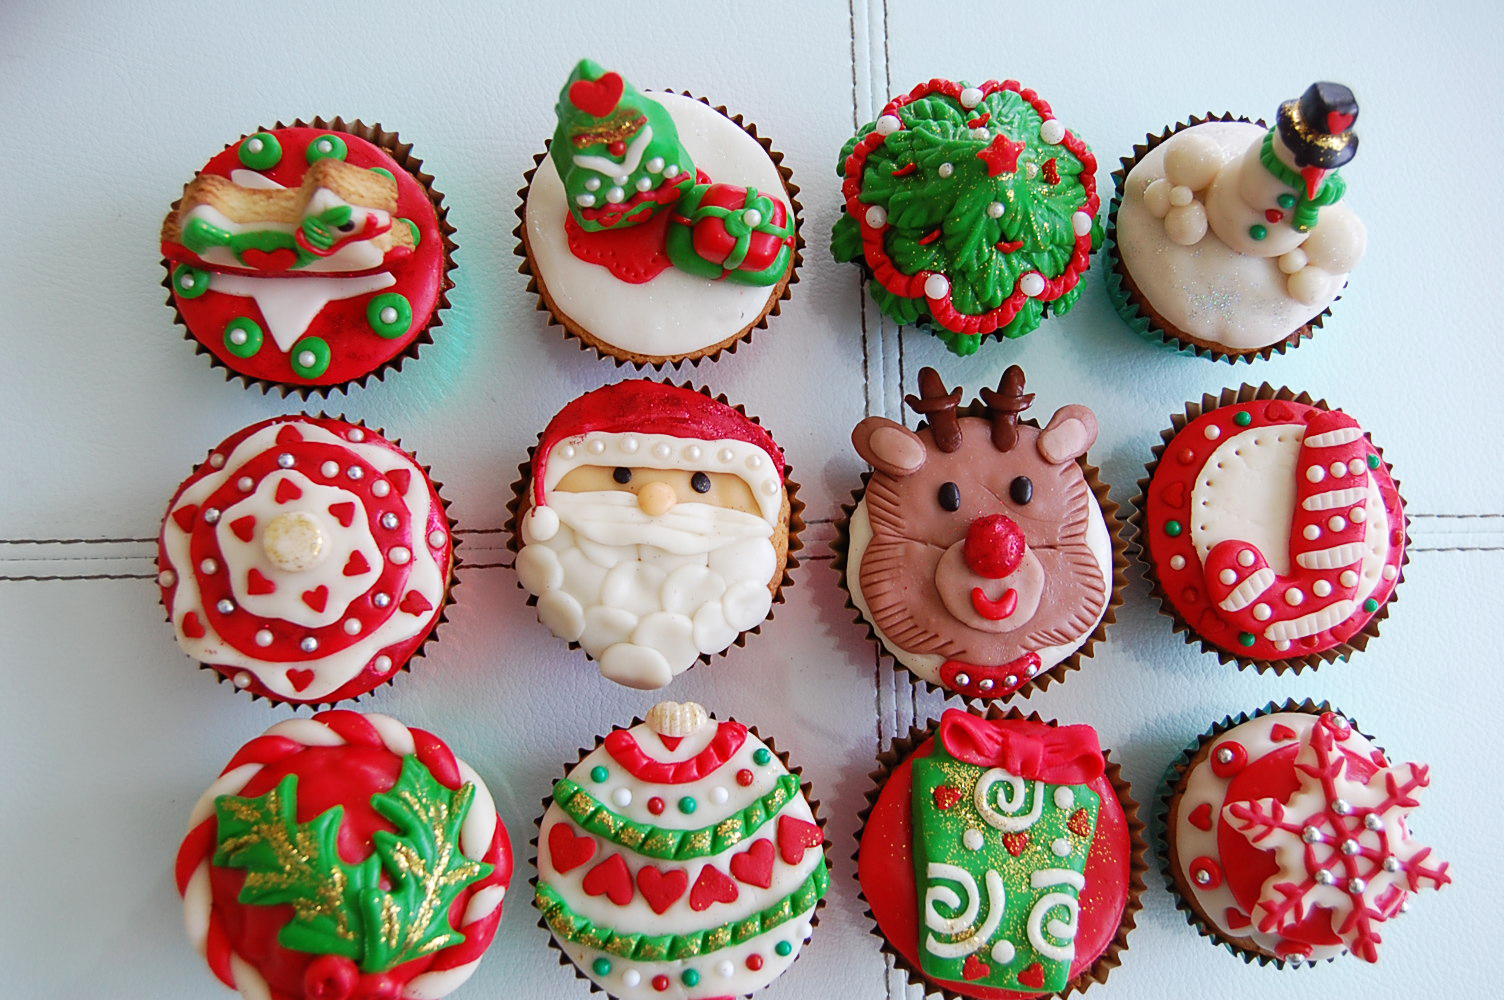 Novelty Christmas Cakes Decorating Ideas